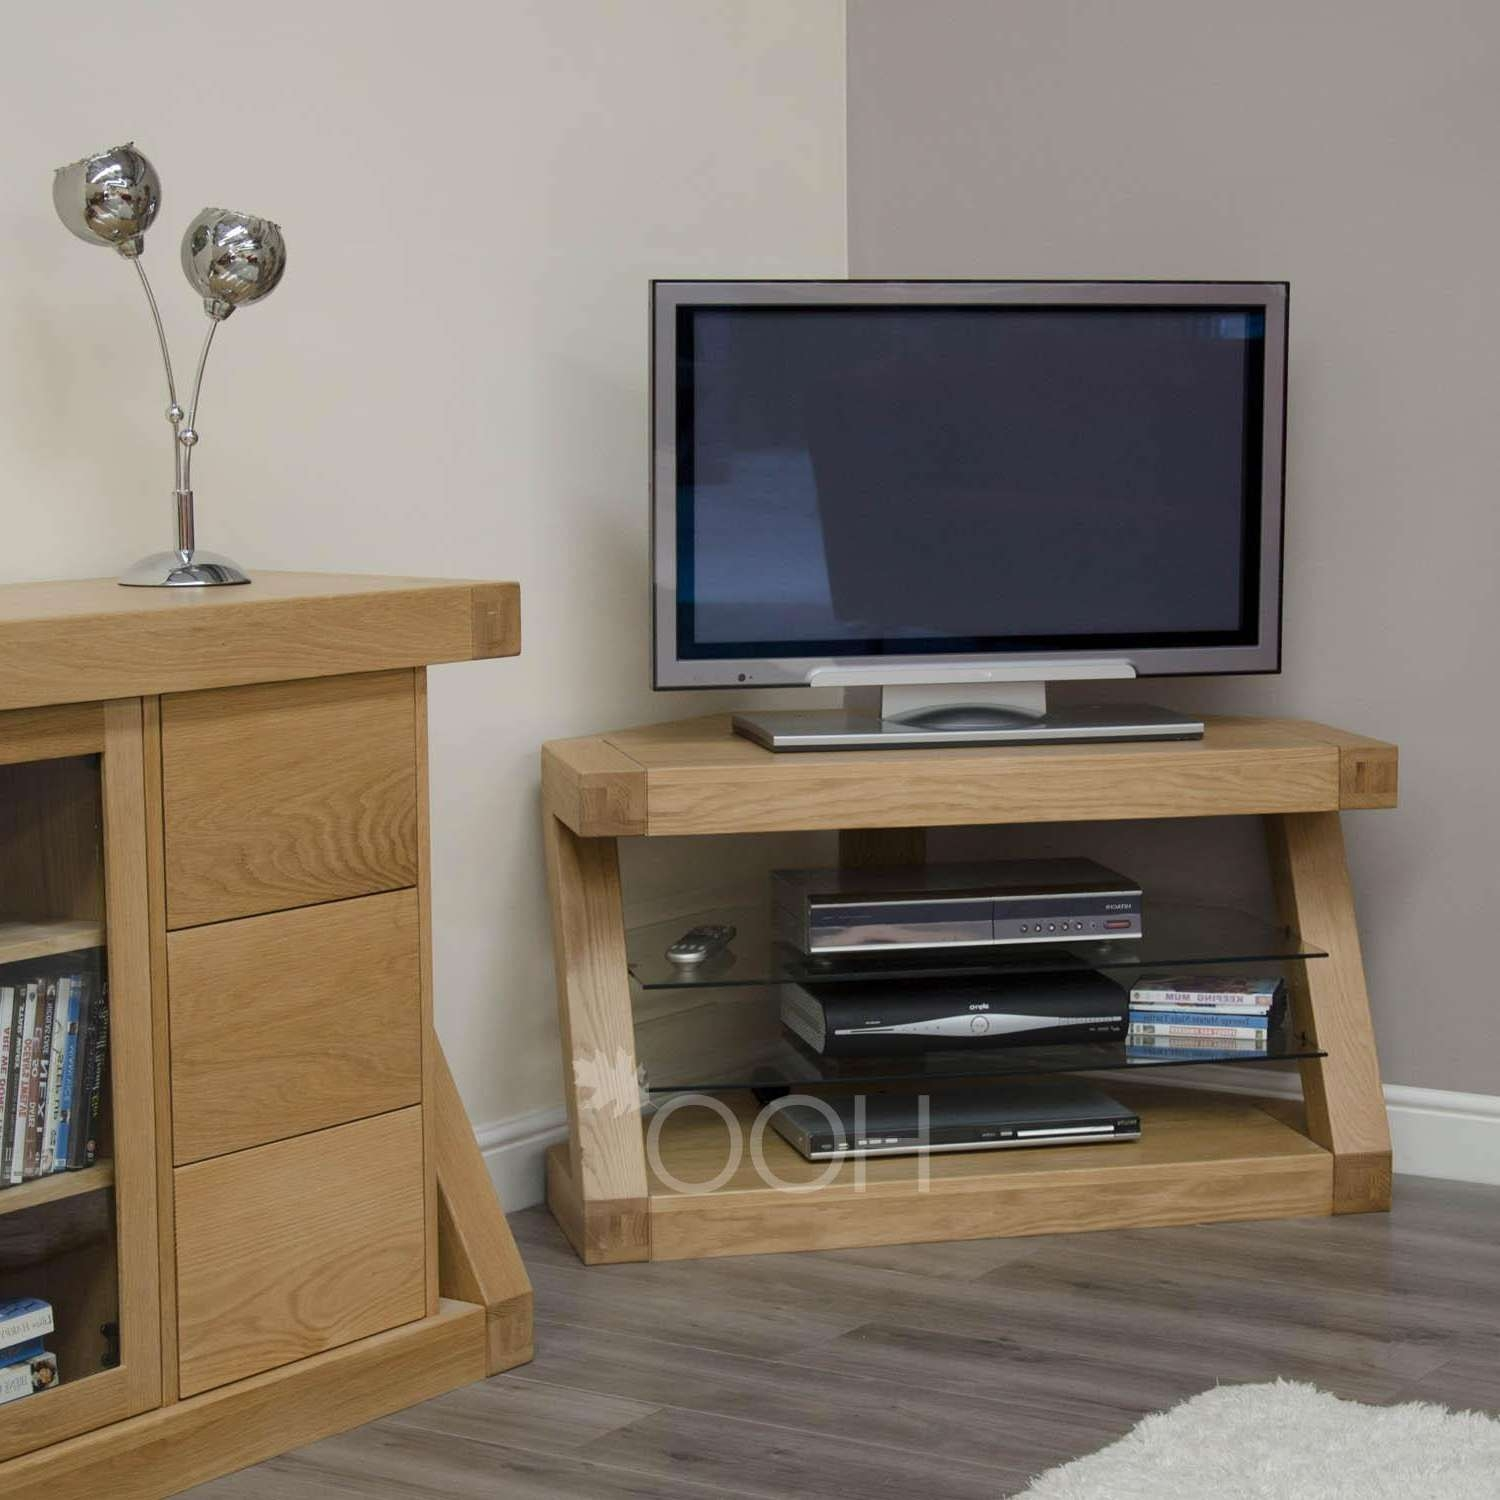 20 photos small oak tv cabinets - Living room ideas with oak furniture ...